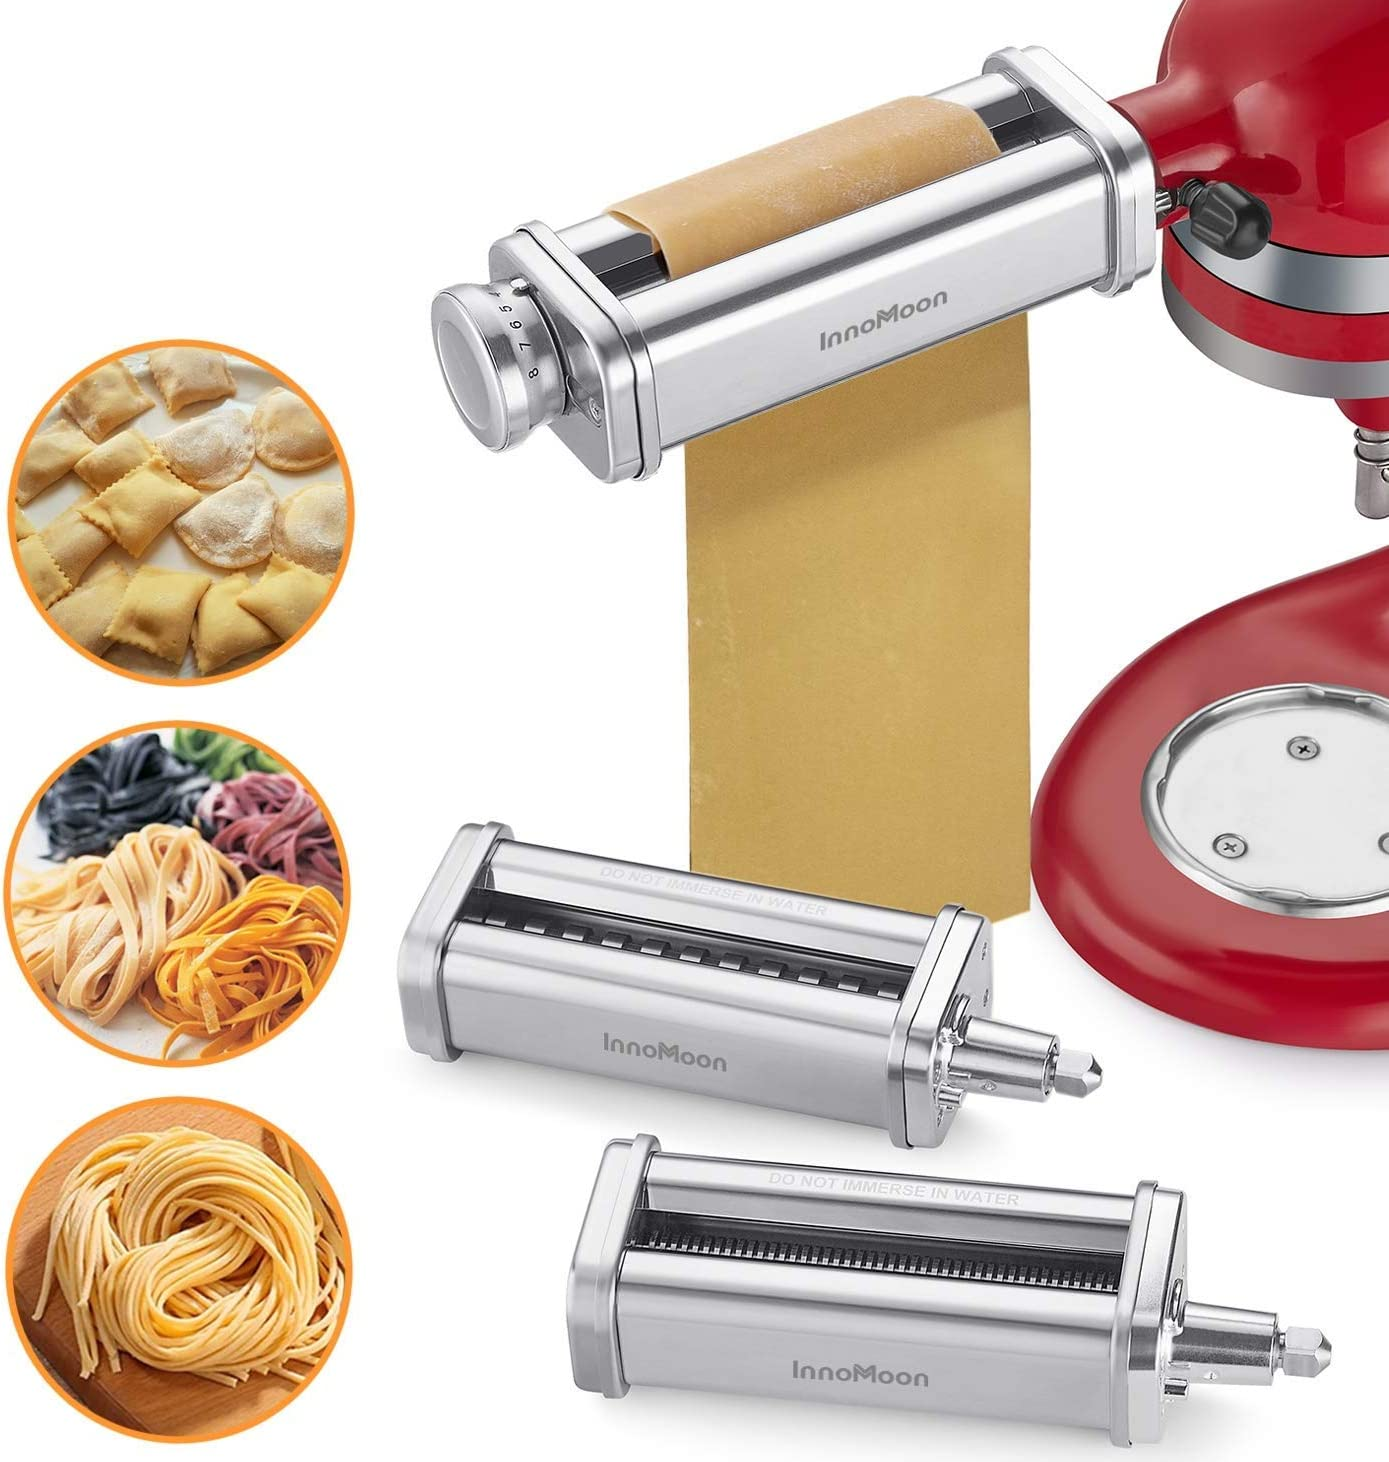 AMZCHEF Universal Pasta Roller Attachment Pasta Maker Stainless Steel Dough Roller Accessory Compatible with Kitchenaid Stand Mixers